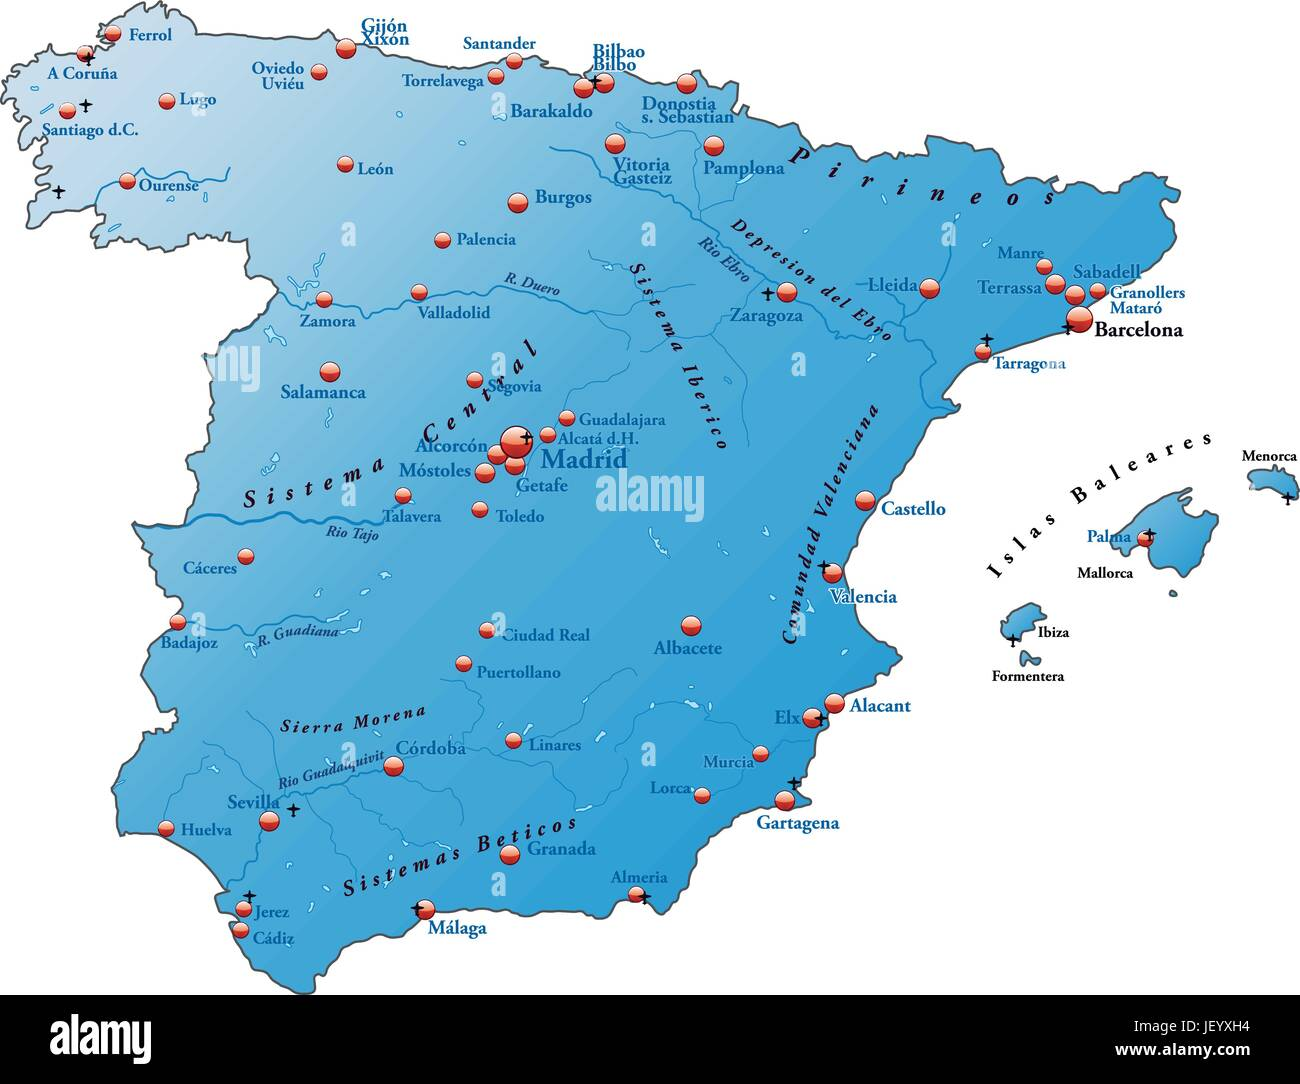 Map Of Spain In The World.Card Atlas Map Of The World Map Spain Card Outline Borders